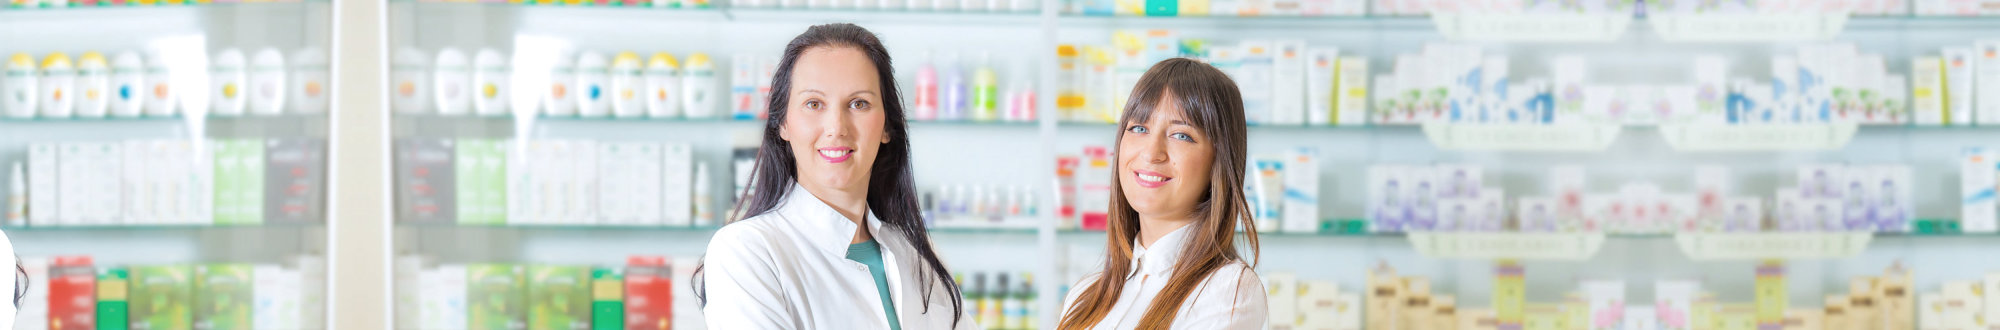 two female pharmacists smiling